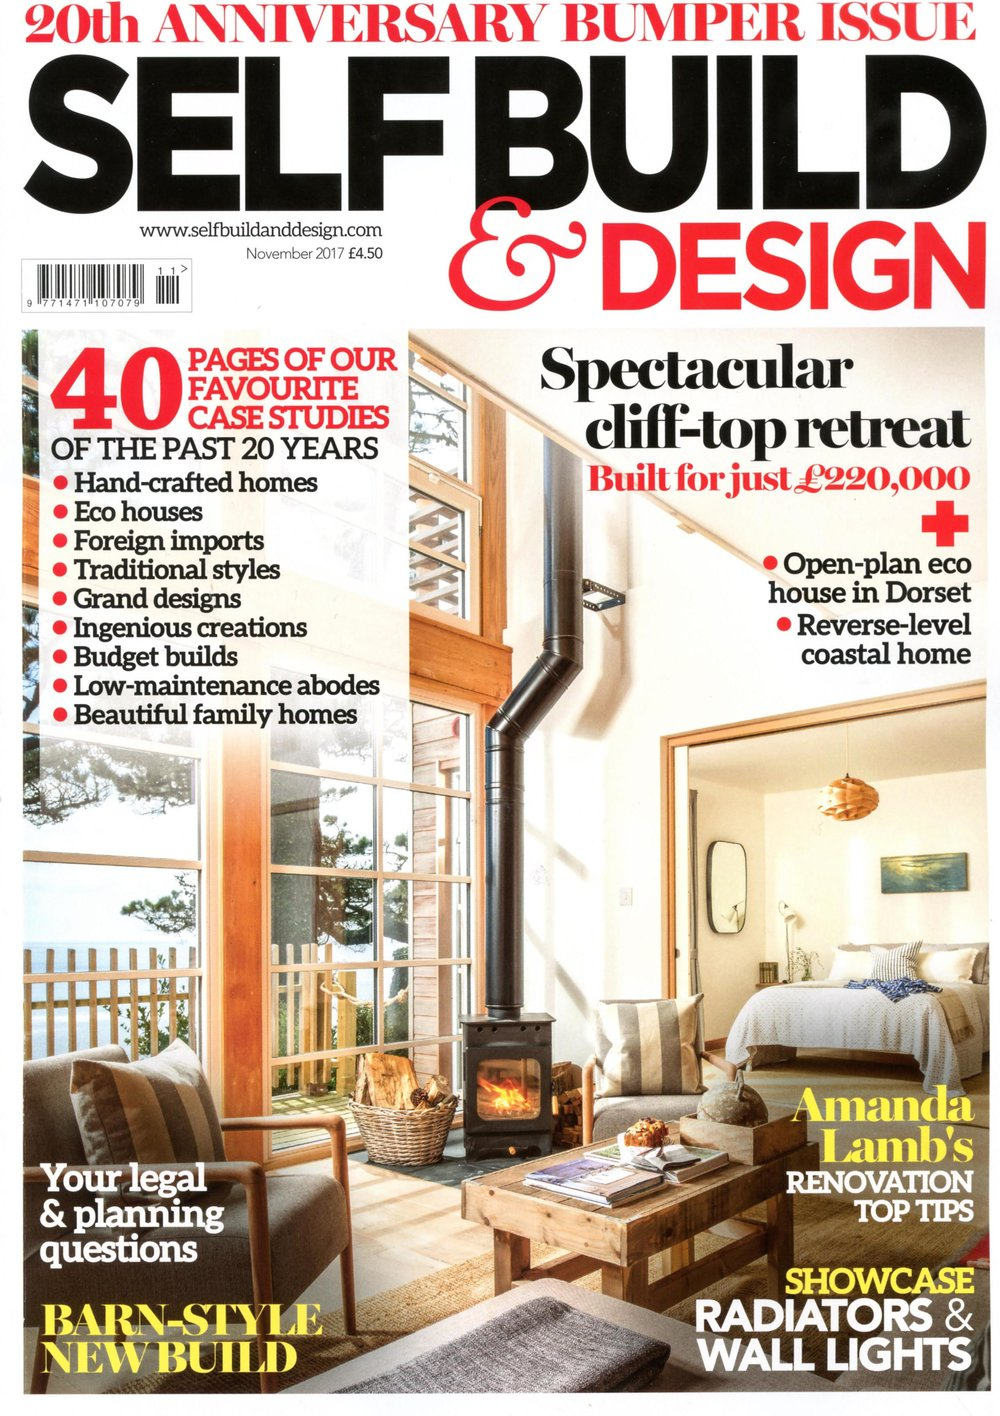 Self Build & Design November 2017.jpg